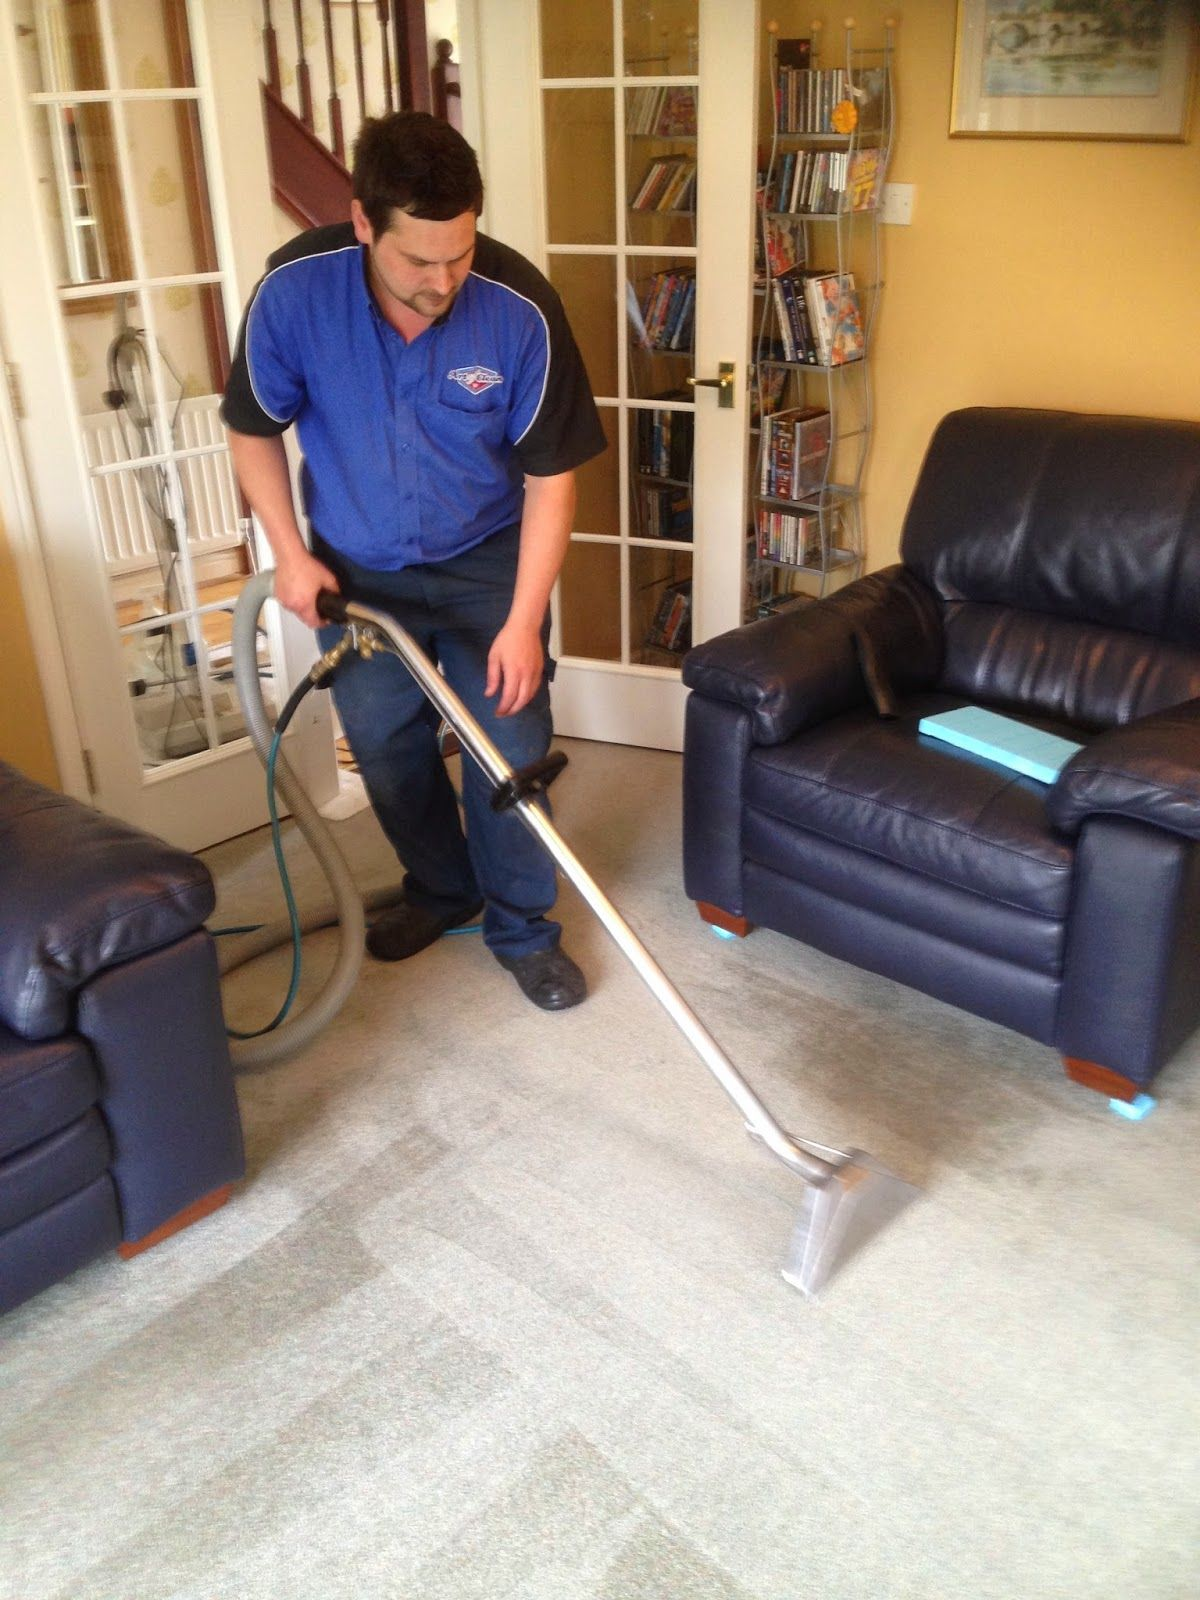 Nathan is cleaning a carpet in Cambridge.